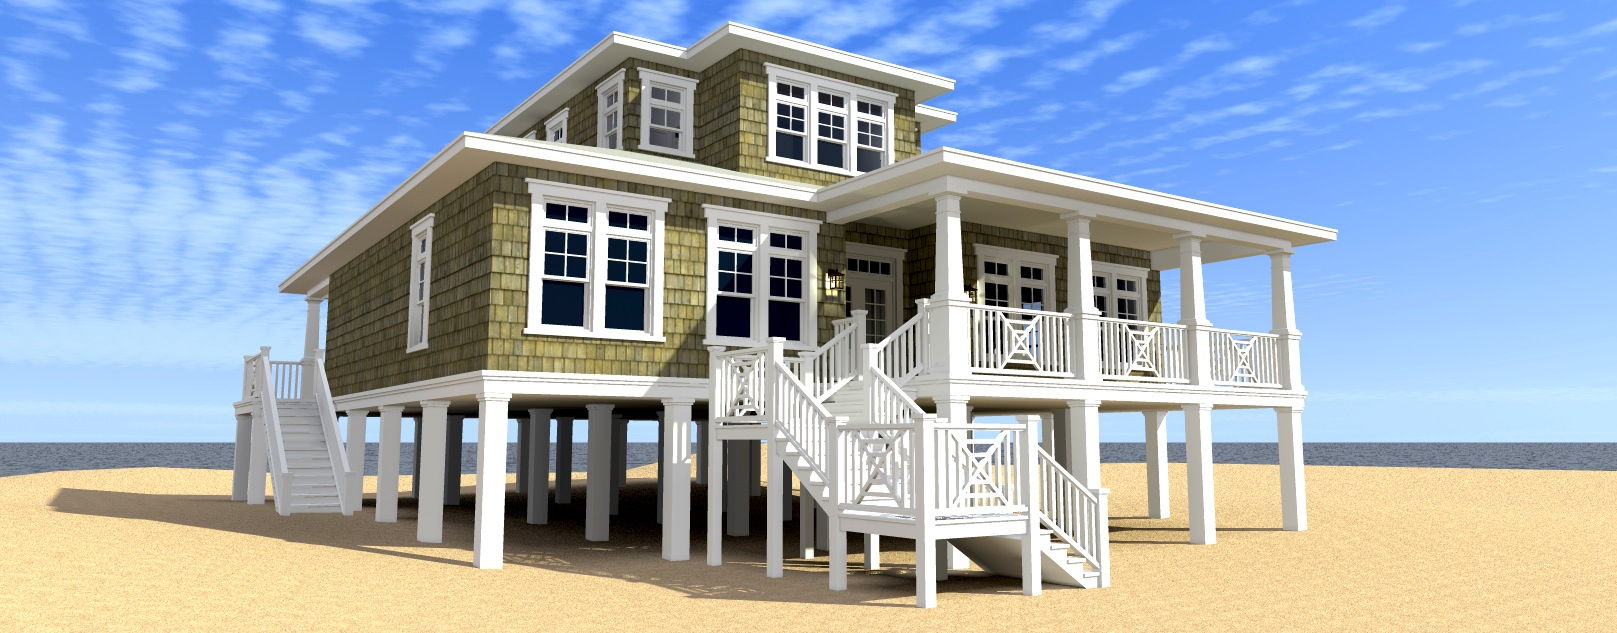 Scuppers house plan by tyree house plans for 3 story beach house floor plans